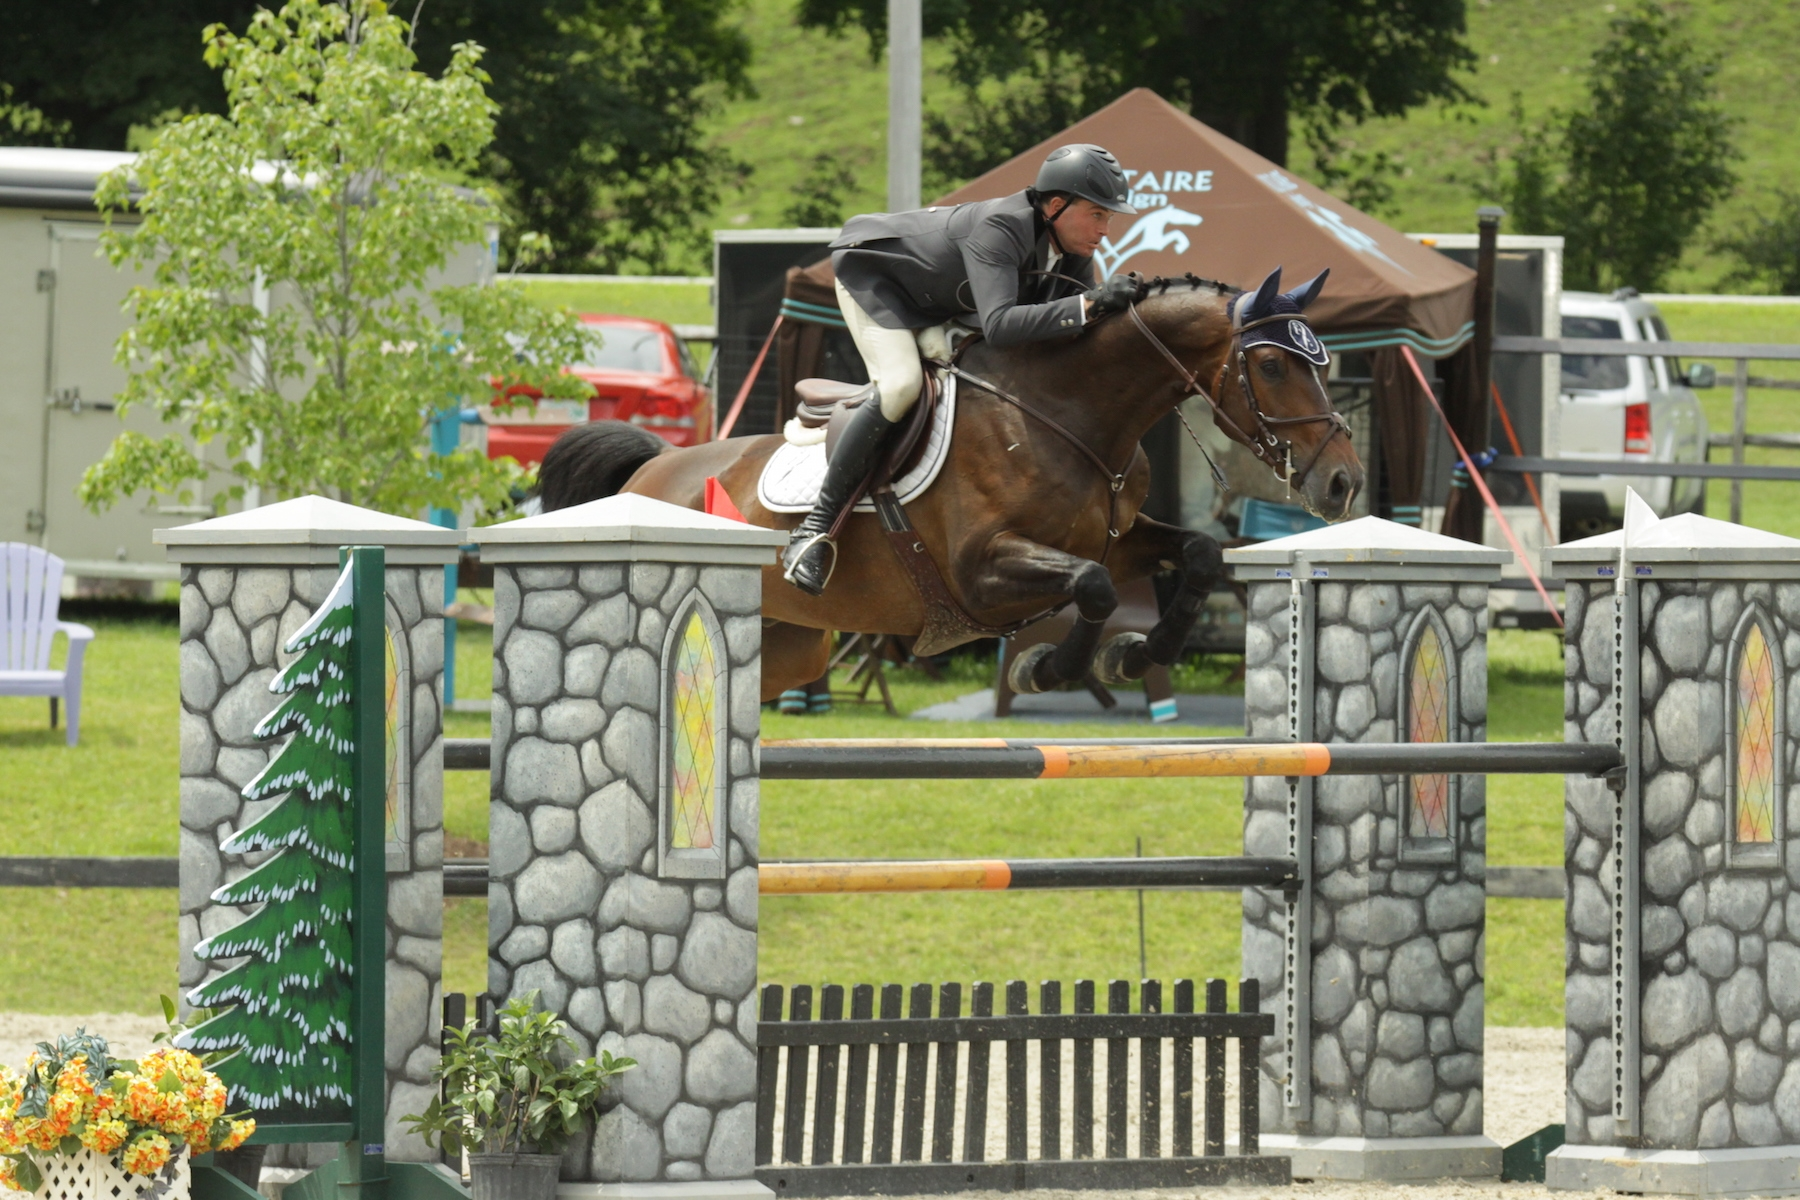 Cory Hardy and Camelot 105 on their way to victory in the $5,000 1.40m Open Jumper on July 22 at the Vermont Summer Festival in East Dorset, VT.<br><b>Photo by <a href='http://www.photoreflect.com/home/default.aspx' target='_blank'>David Mullinix Photography</a></b>